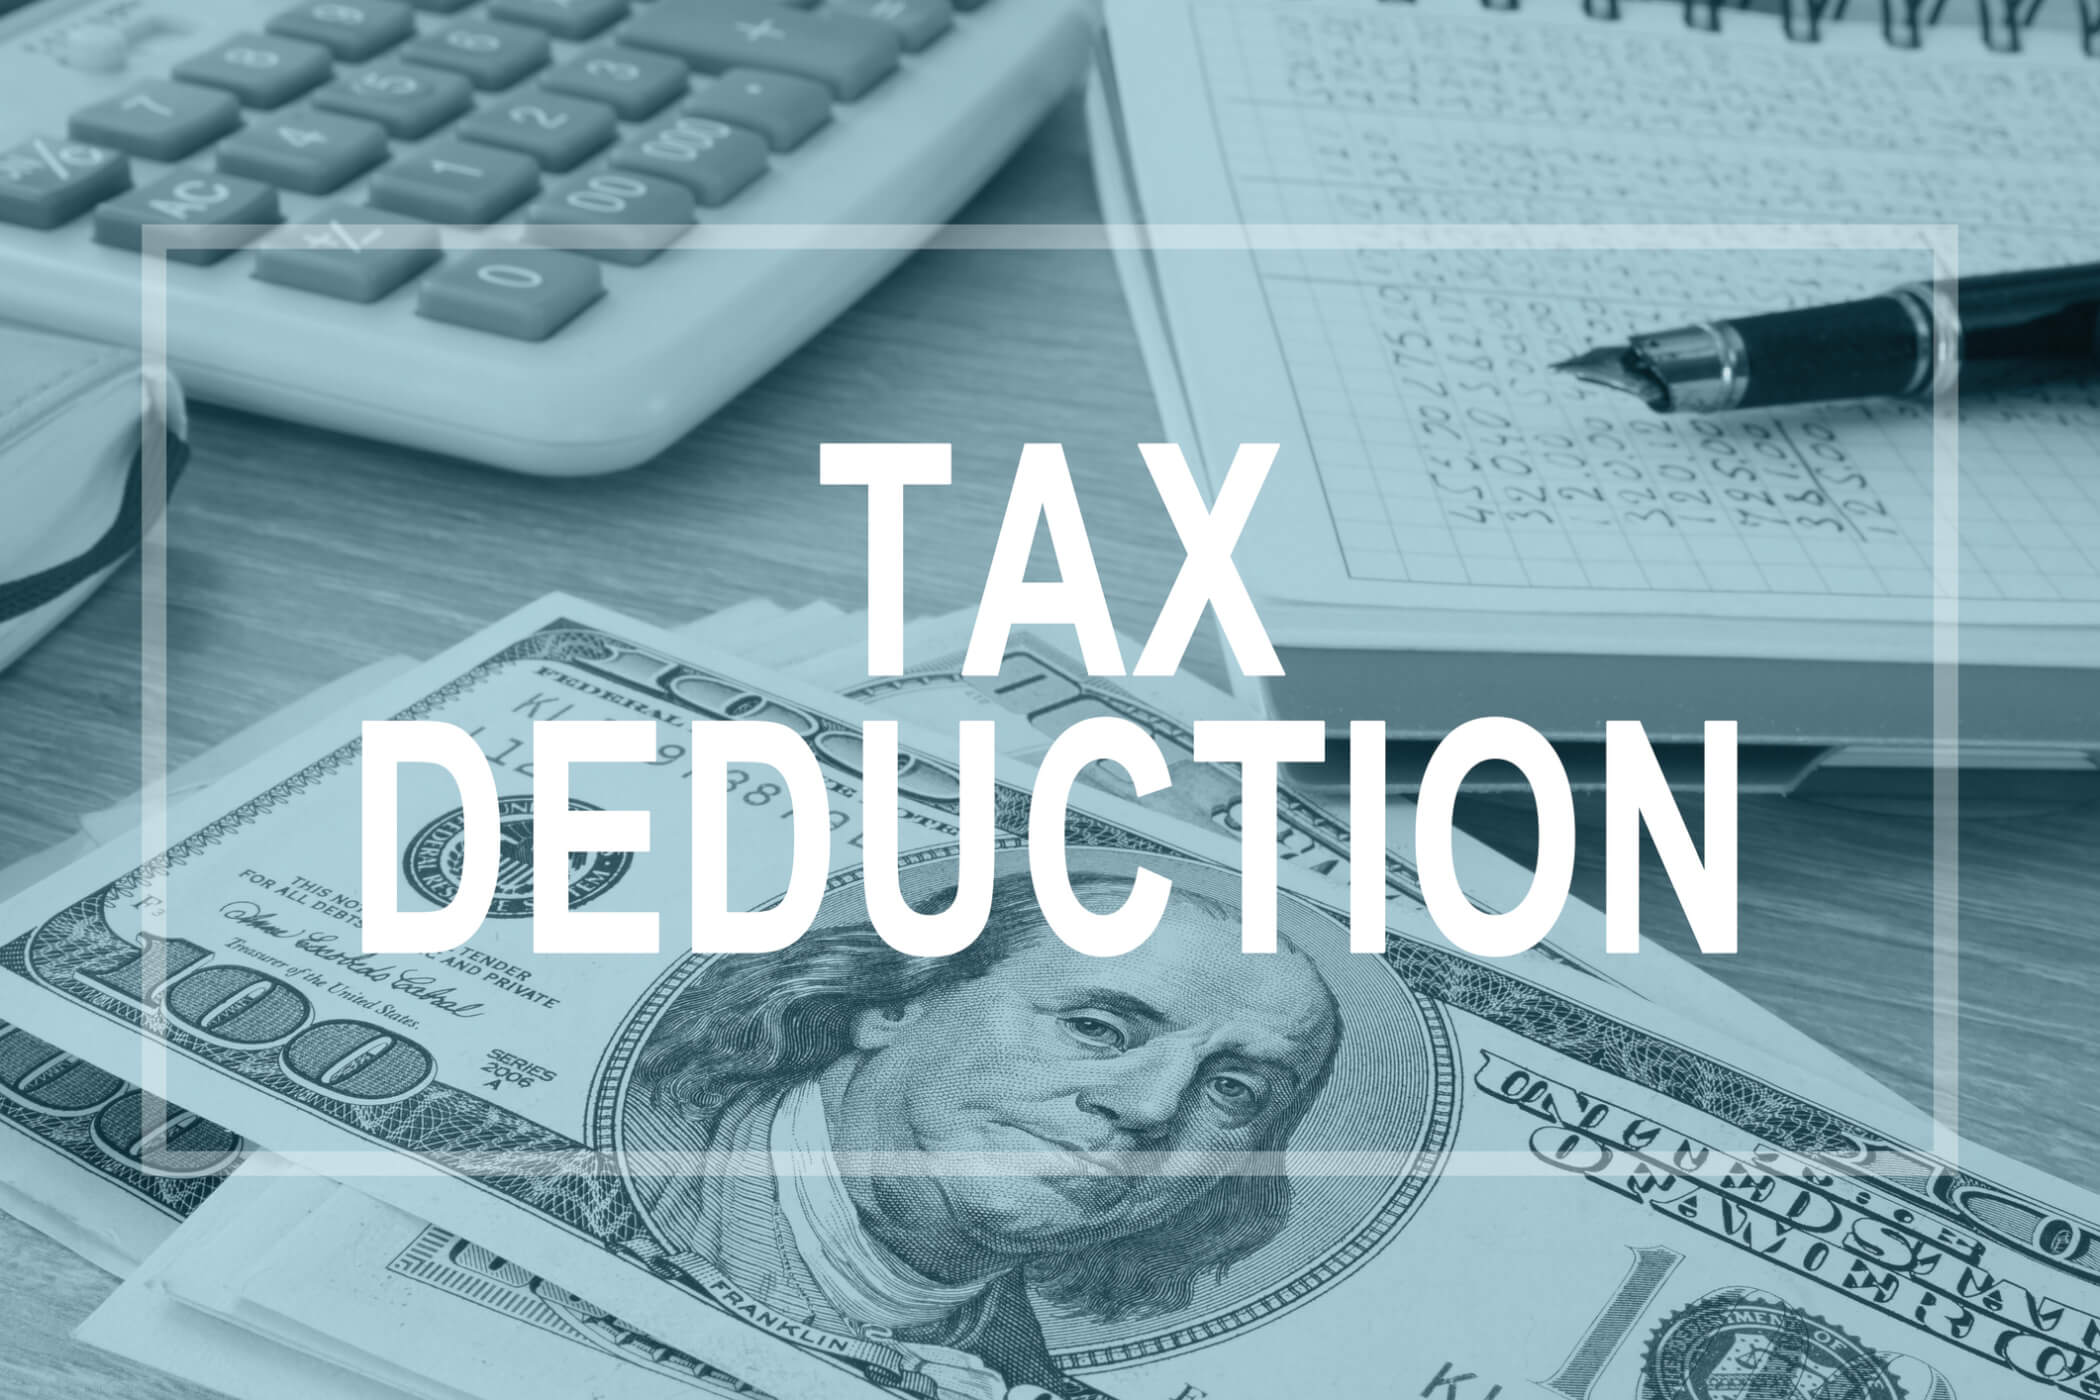 Tax deductions available for home remodeling